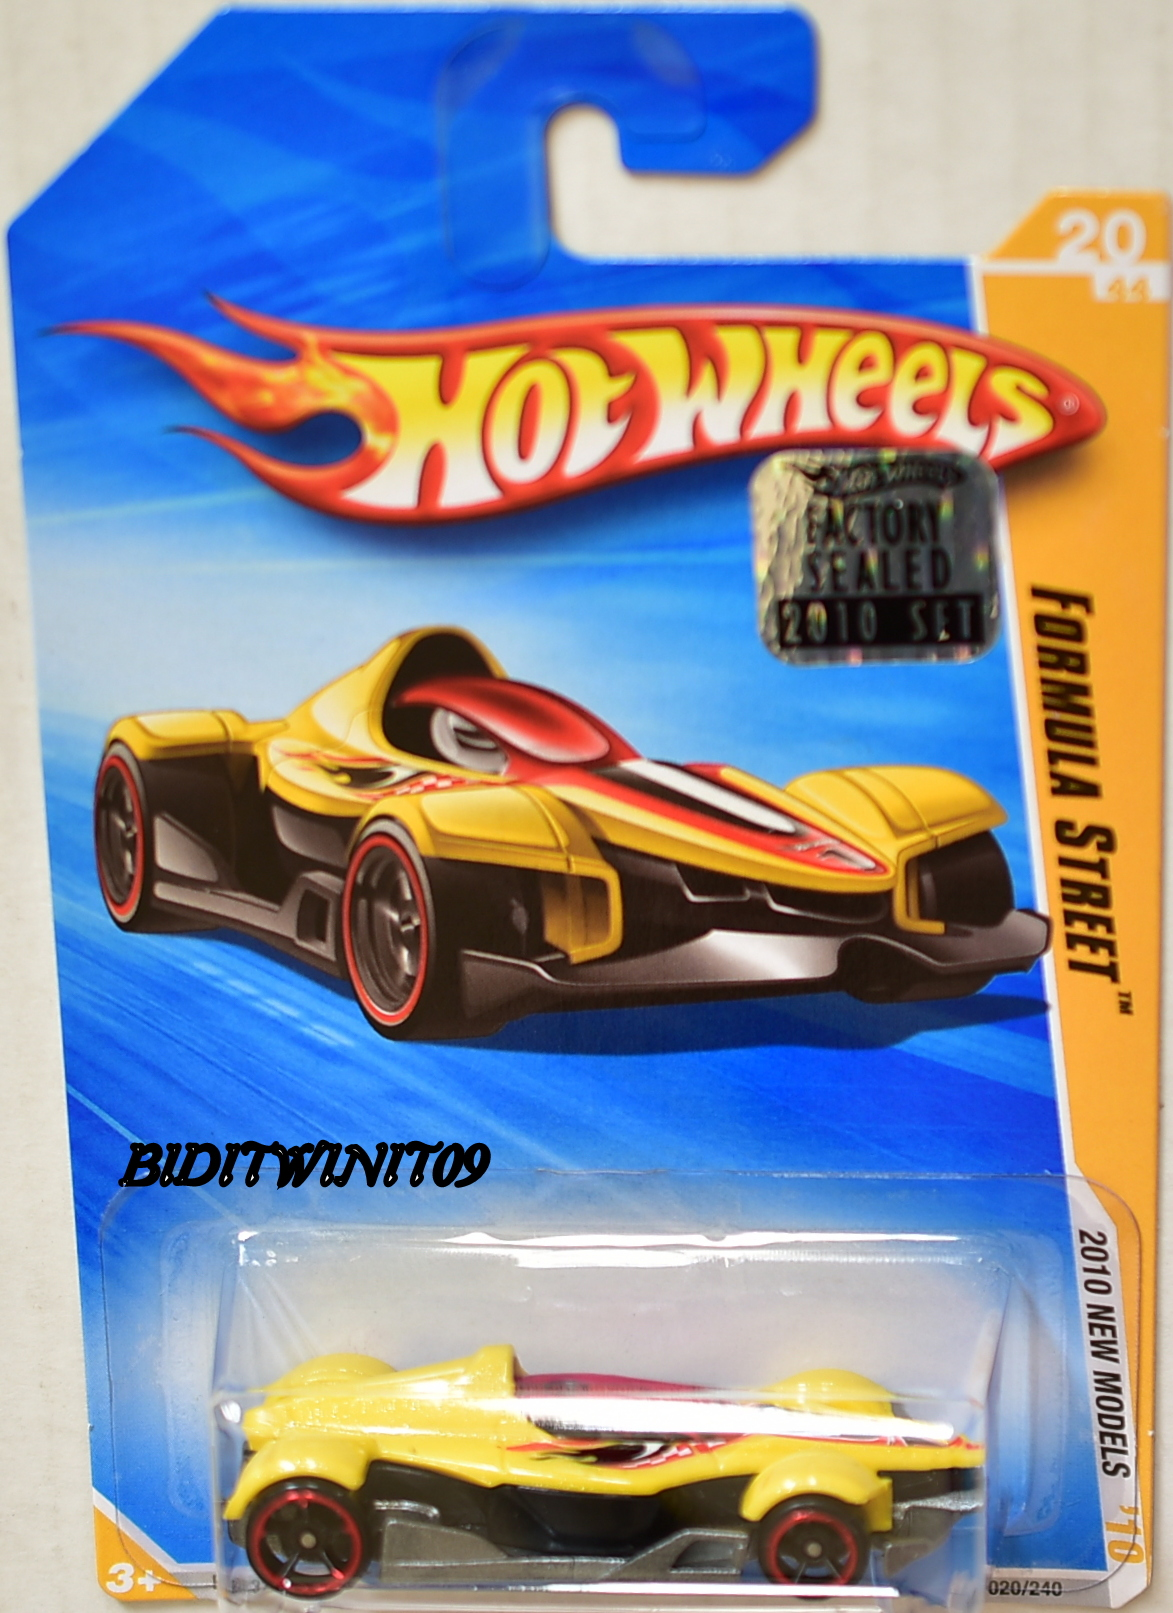 HOT WHEELS 2010 NEW MODELS FORMULA STREET YELLOW FACTORY SEALED